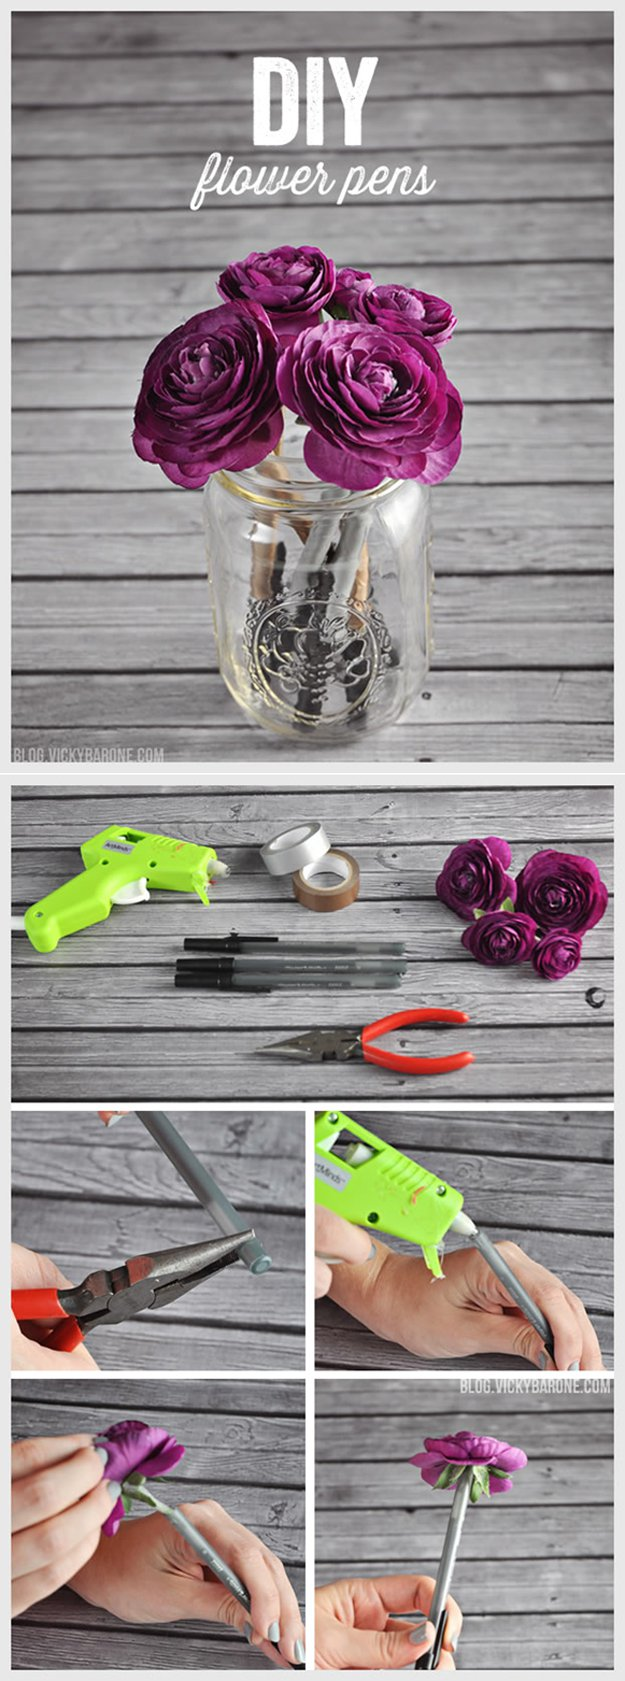 Washi Tape Crafts - DIY Flower Pens - Wall Art, Frames, Cards, Pencils, Room Decor and DIY Gifts, Back To School Supplies - Creative, Fun Craft Ideas for Teens, Tweens and Teenagers - Step by Step Tutorials and Instructions #washitape #crafts #cheapcrafts #teencrafts